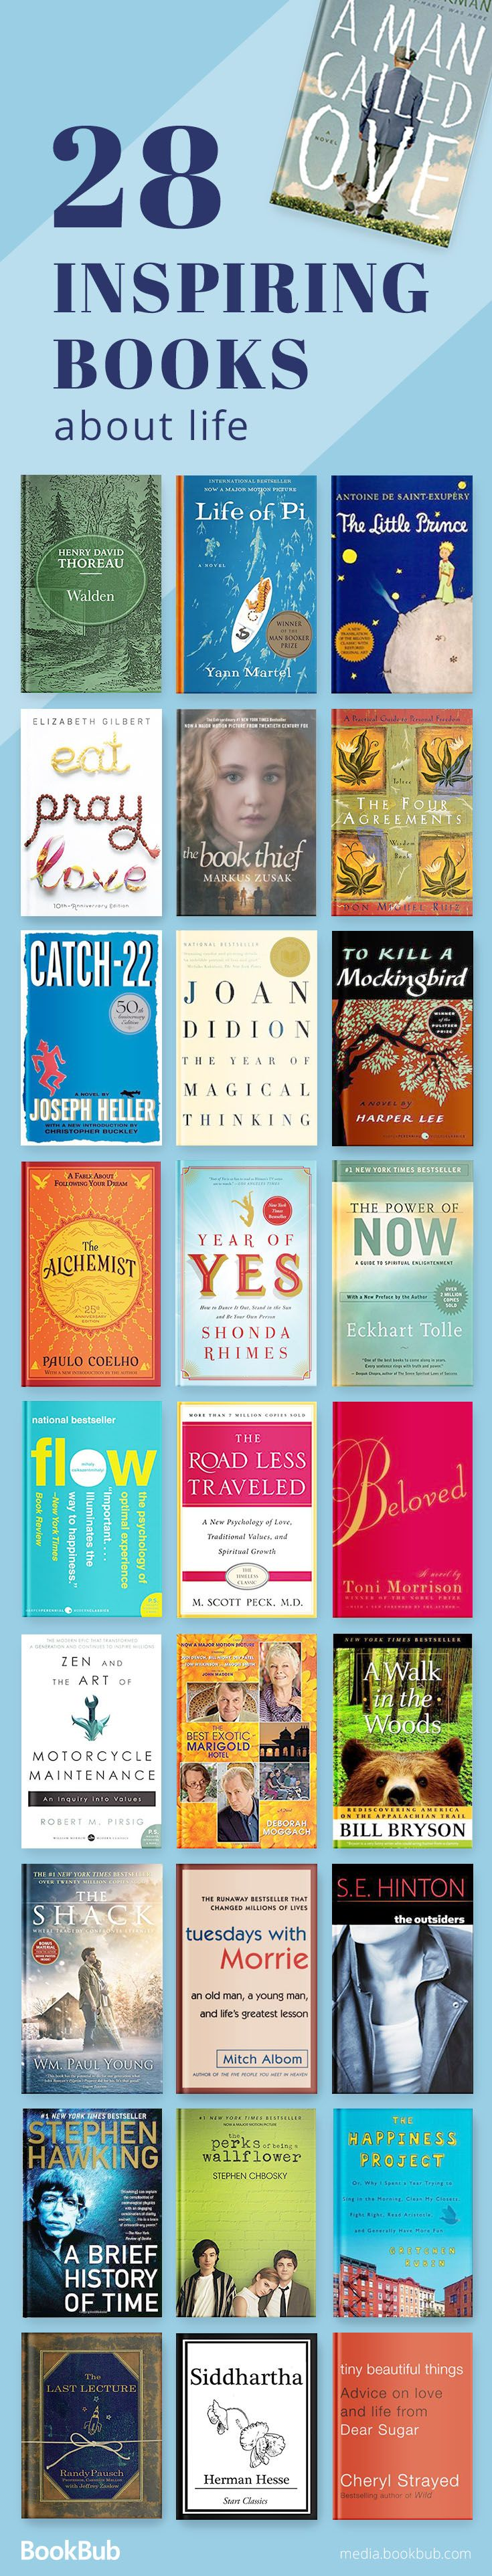 28 Inspiring Books About Life That Are Worth Reading